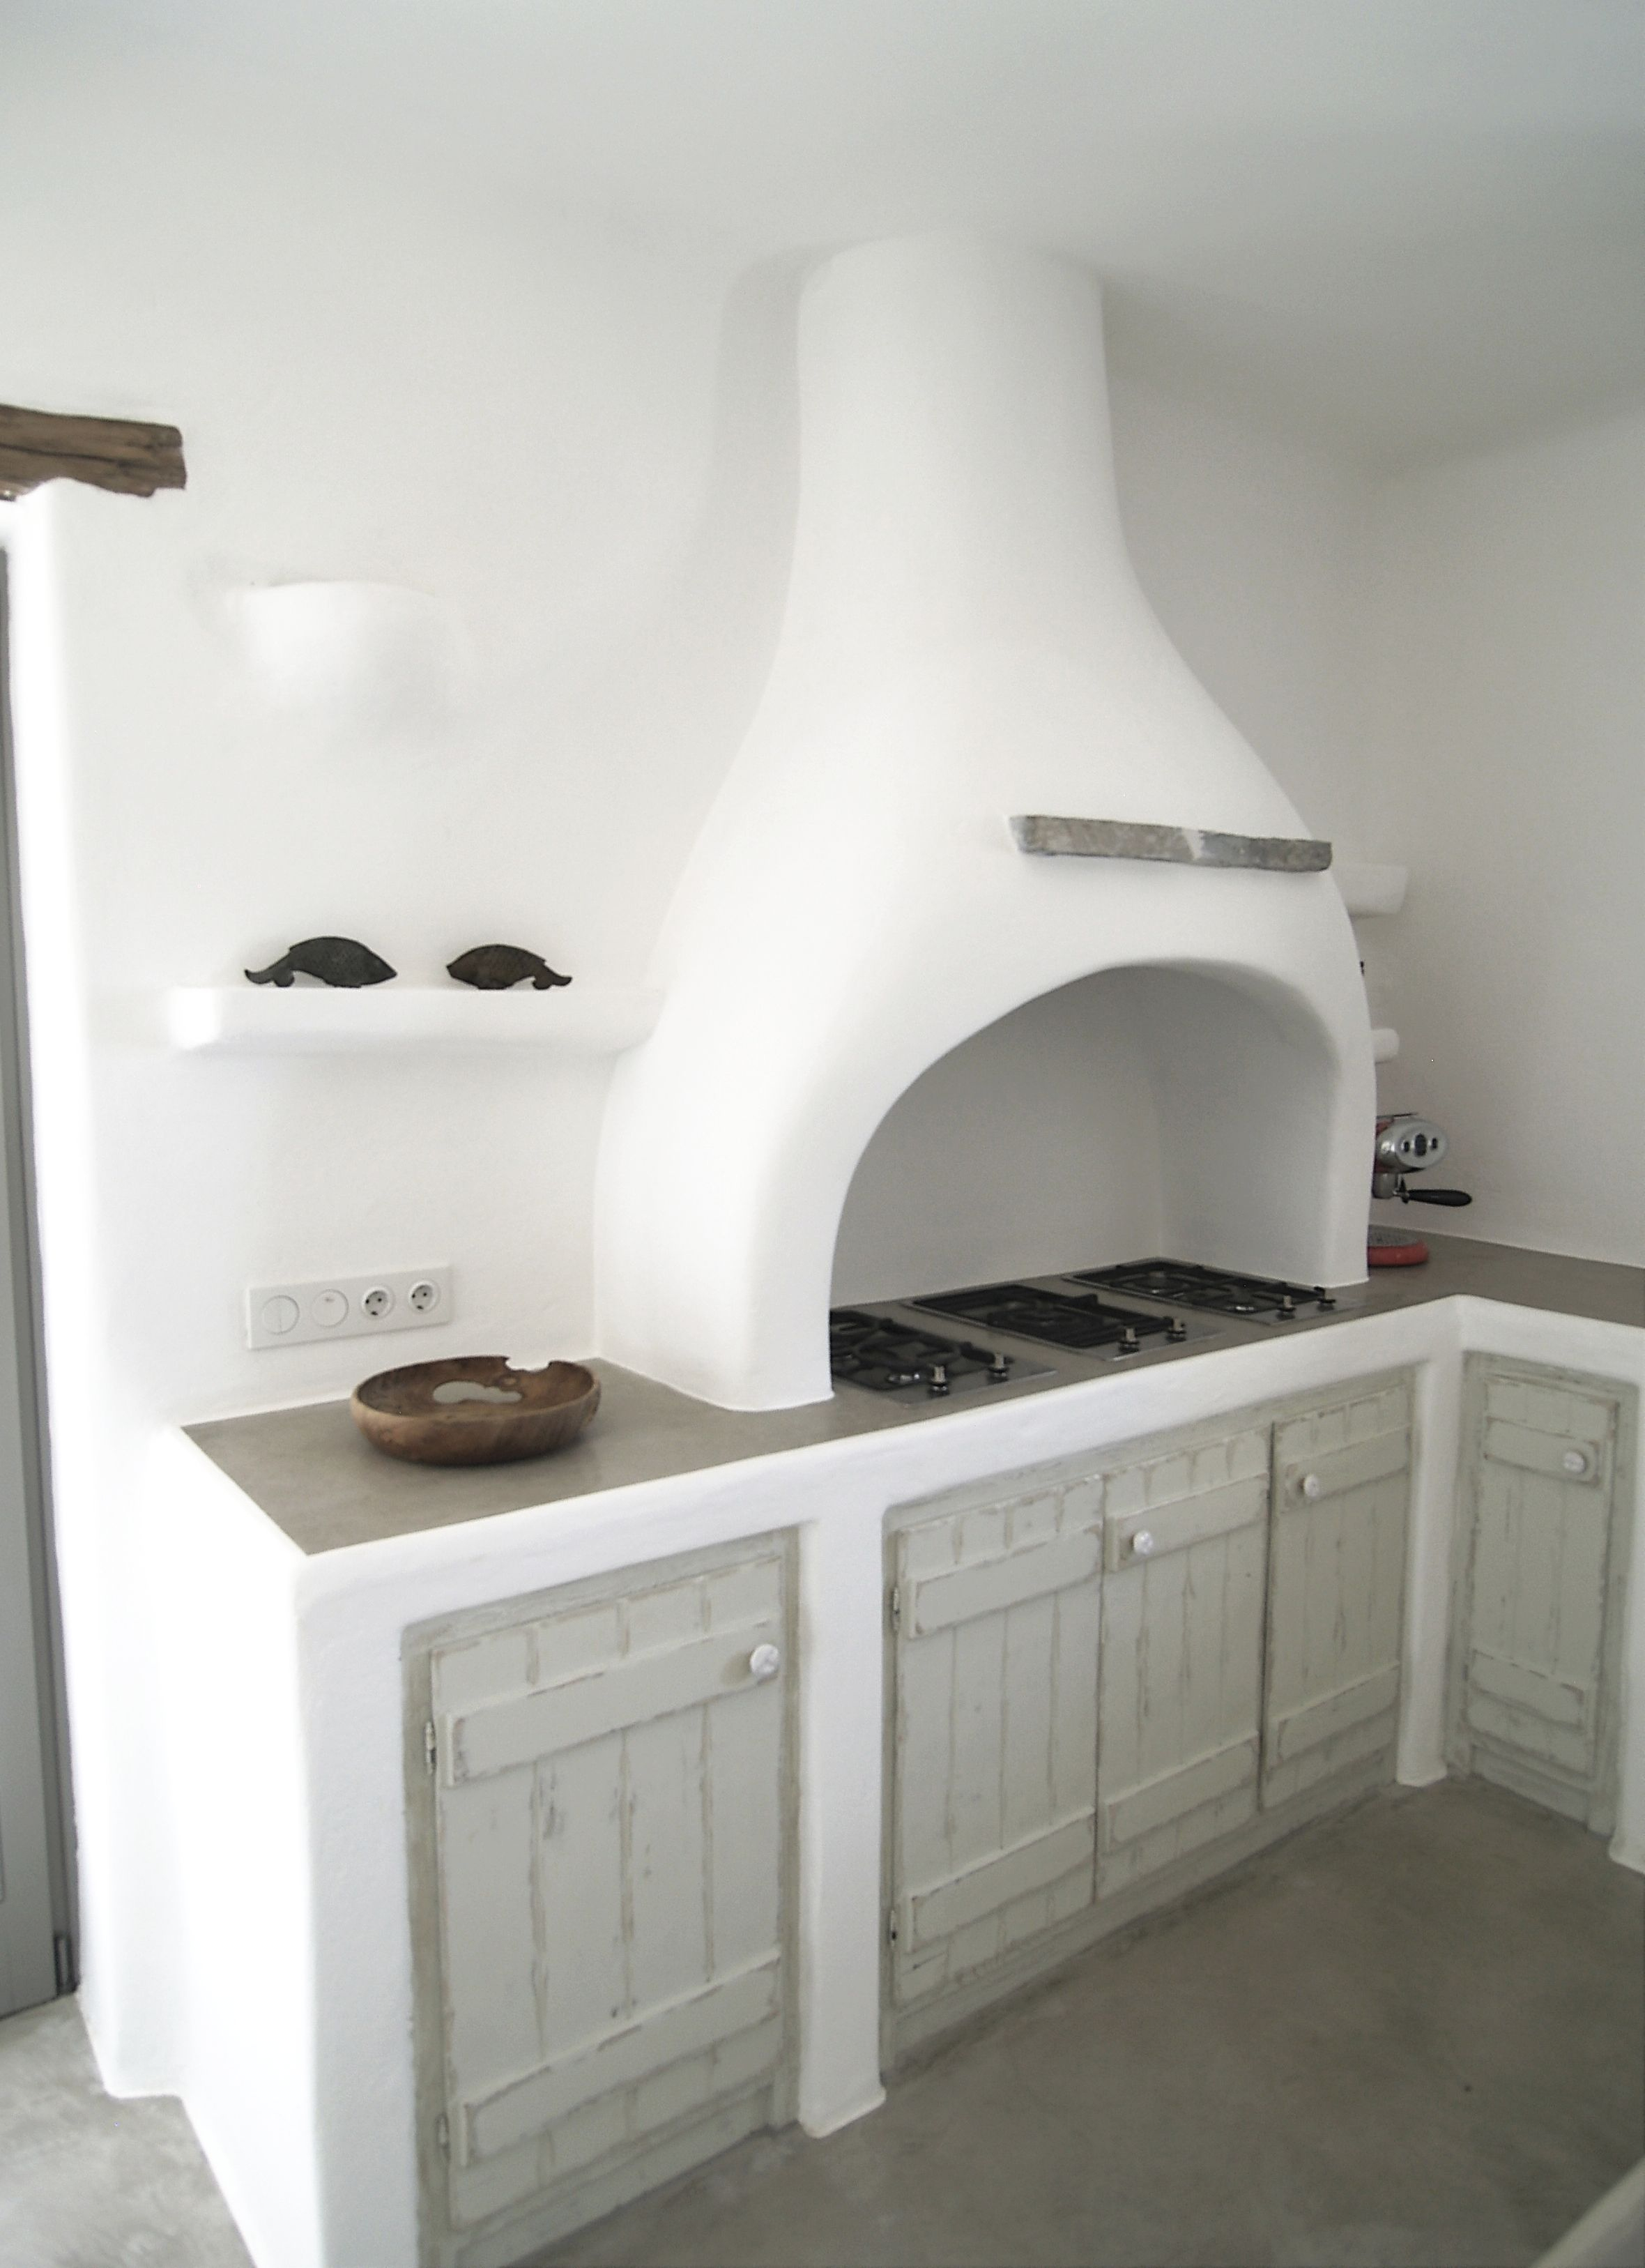 Designmag Salle De Bain Beau Photographie Paros Greece Traditional Built Kitchen Counter and Hood